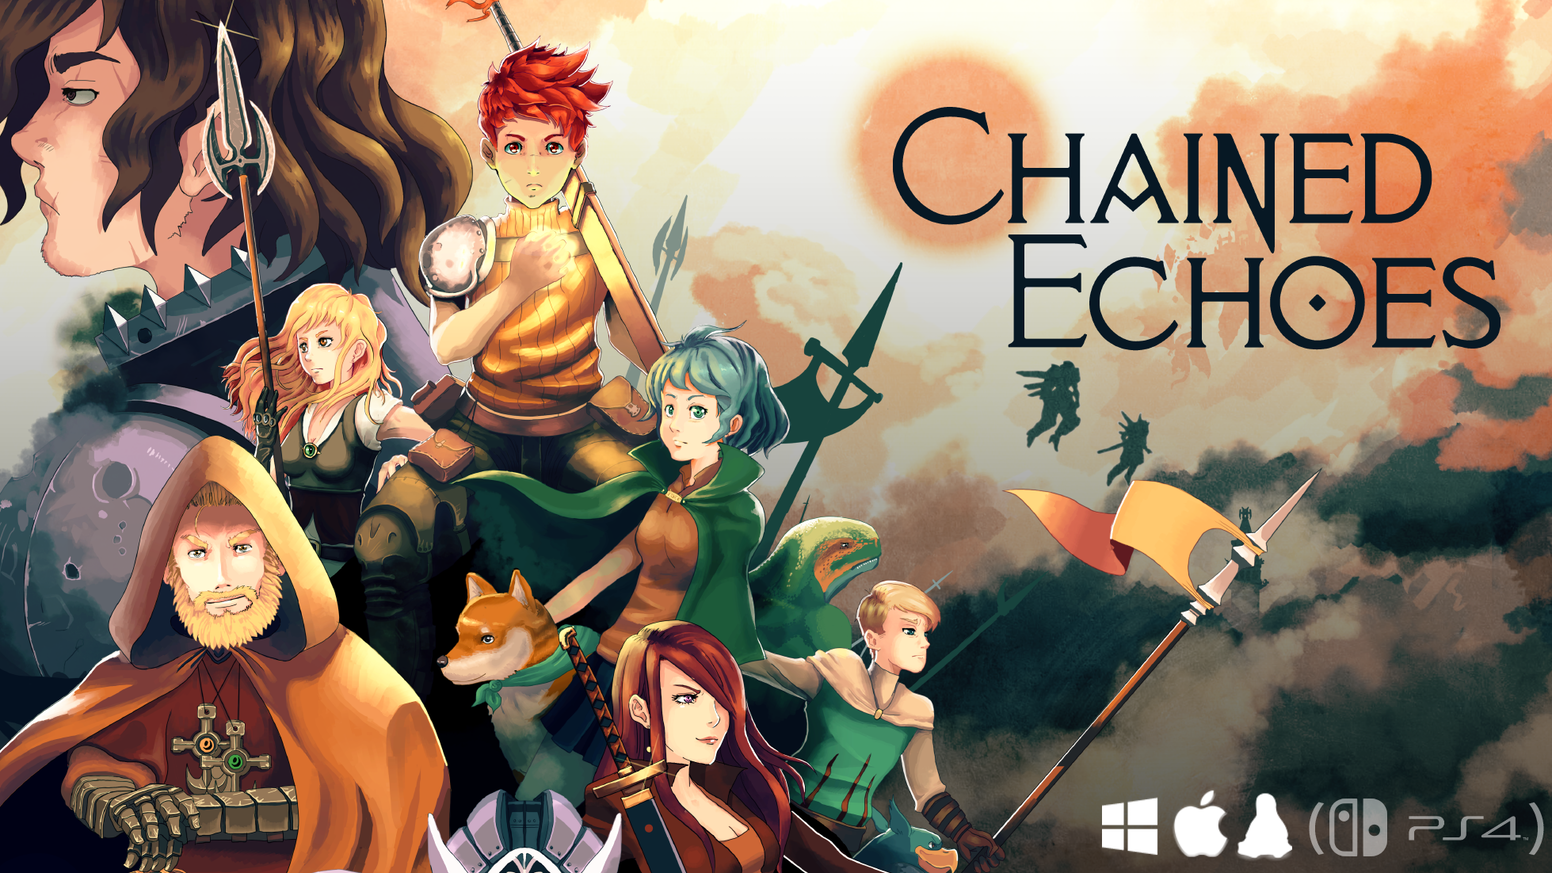 A classic JRPG adventure that combines a fantasy world full of magic with mechs and airships.